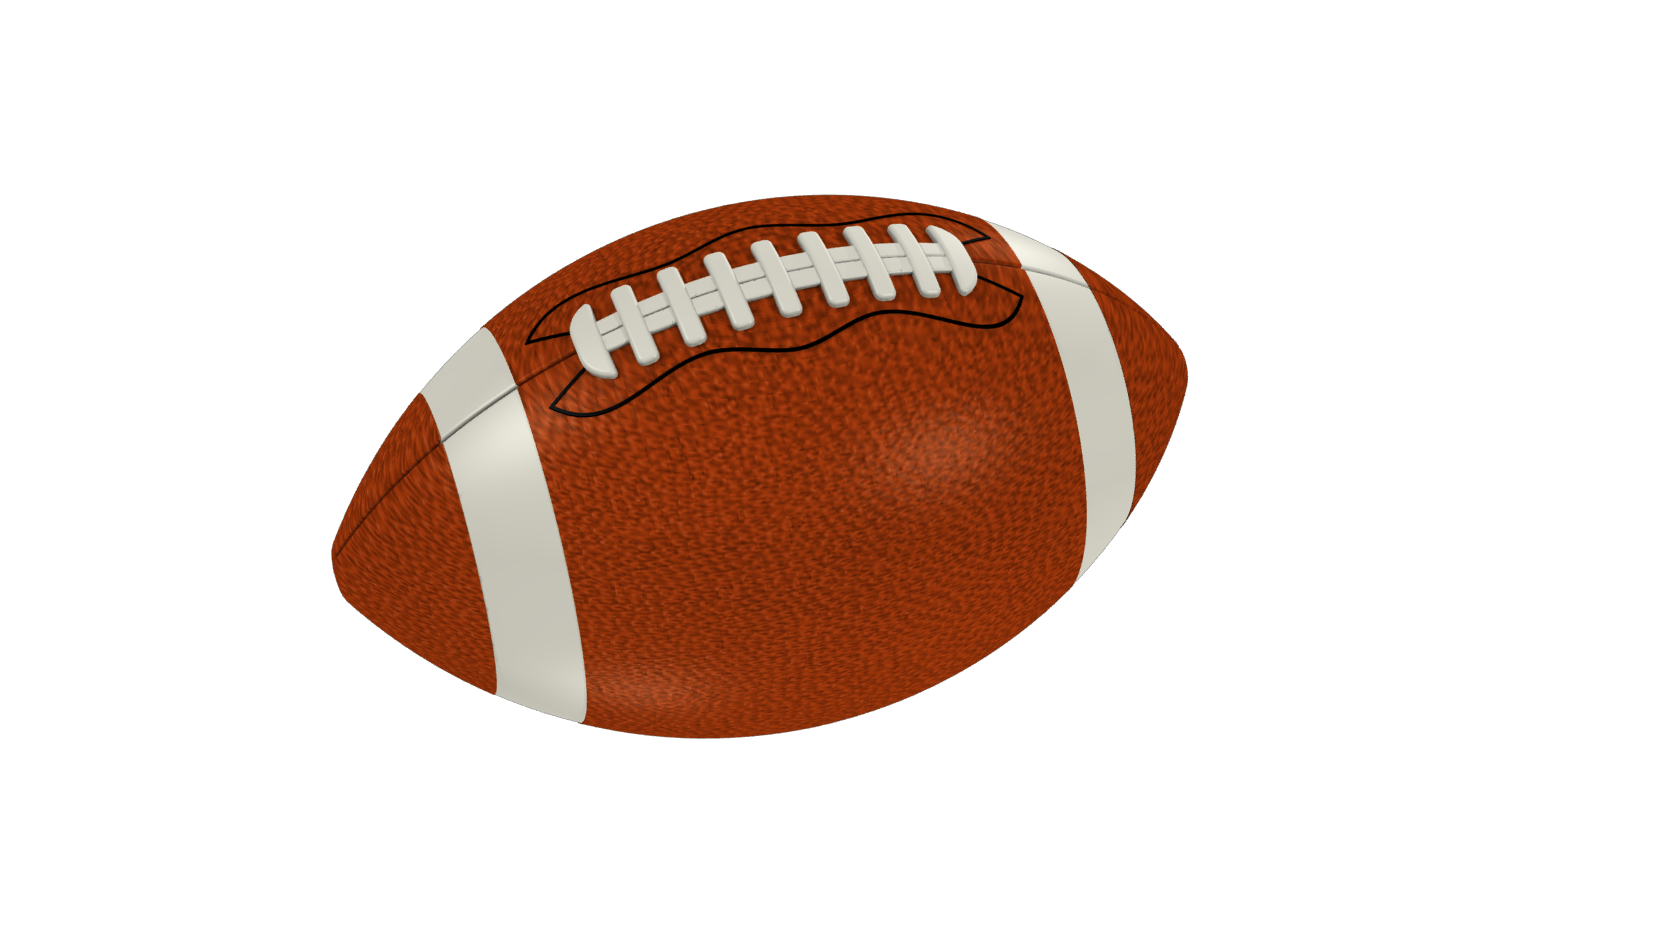 Clear background clip art. Football clipart baby